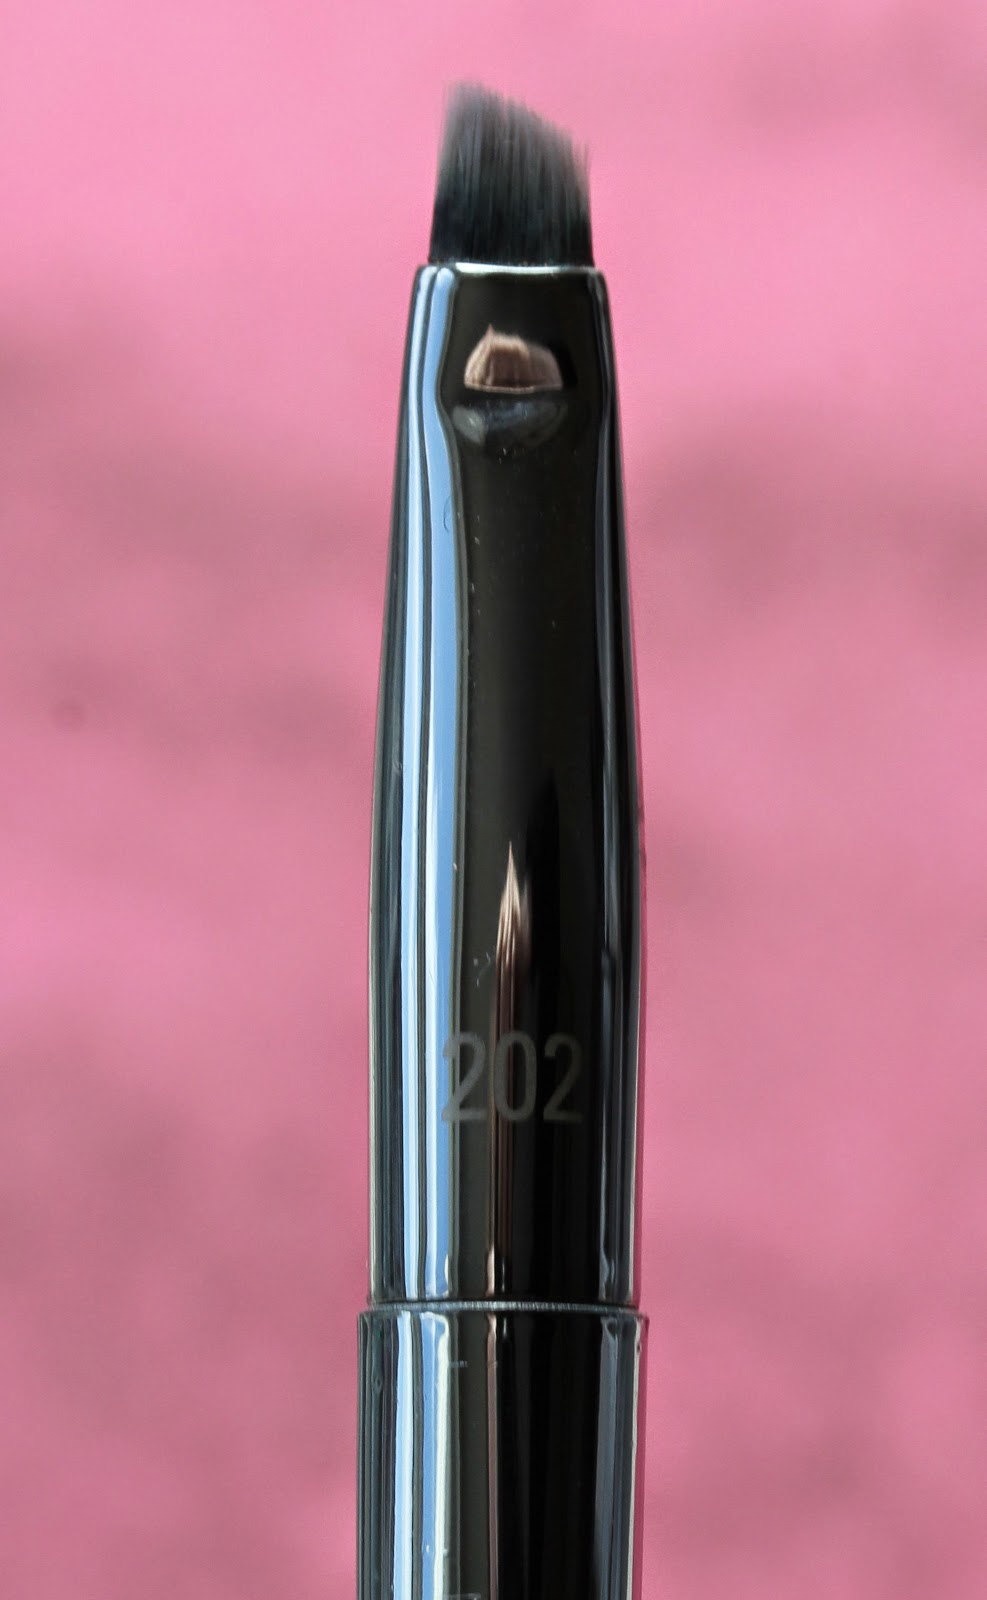 Real Techniques Bold Metals Angled Liner brush